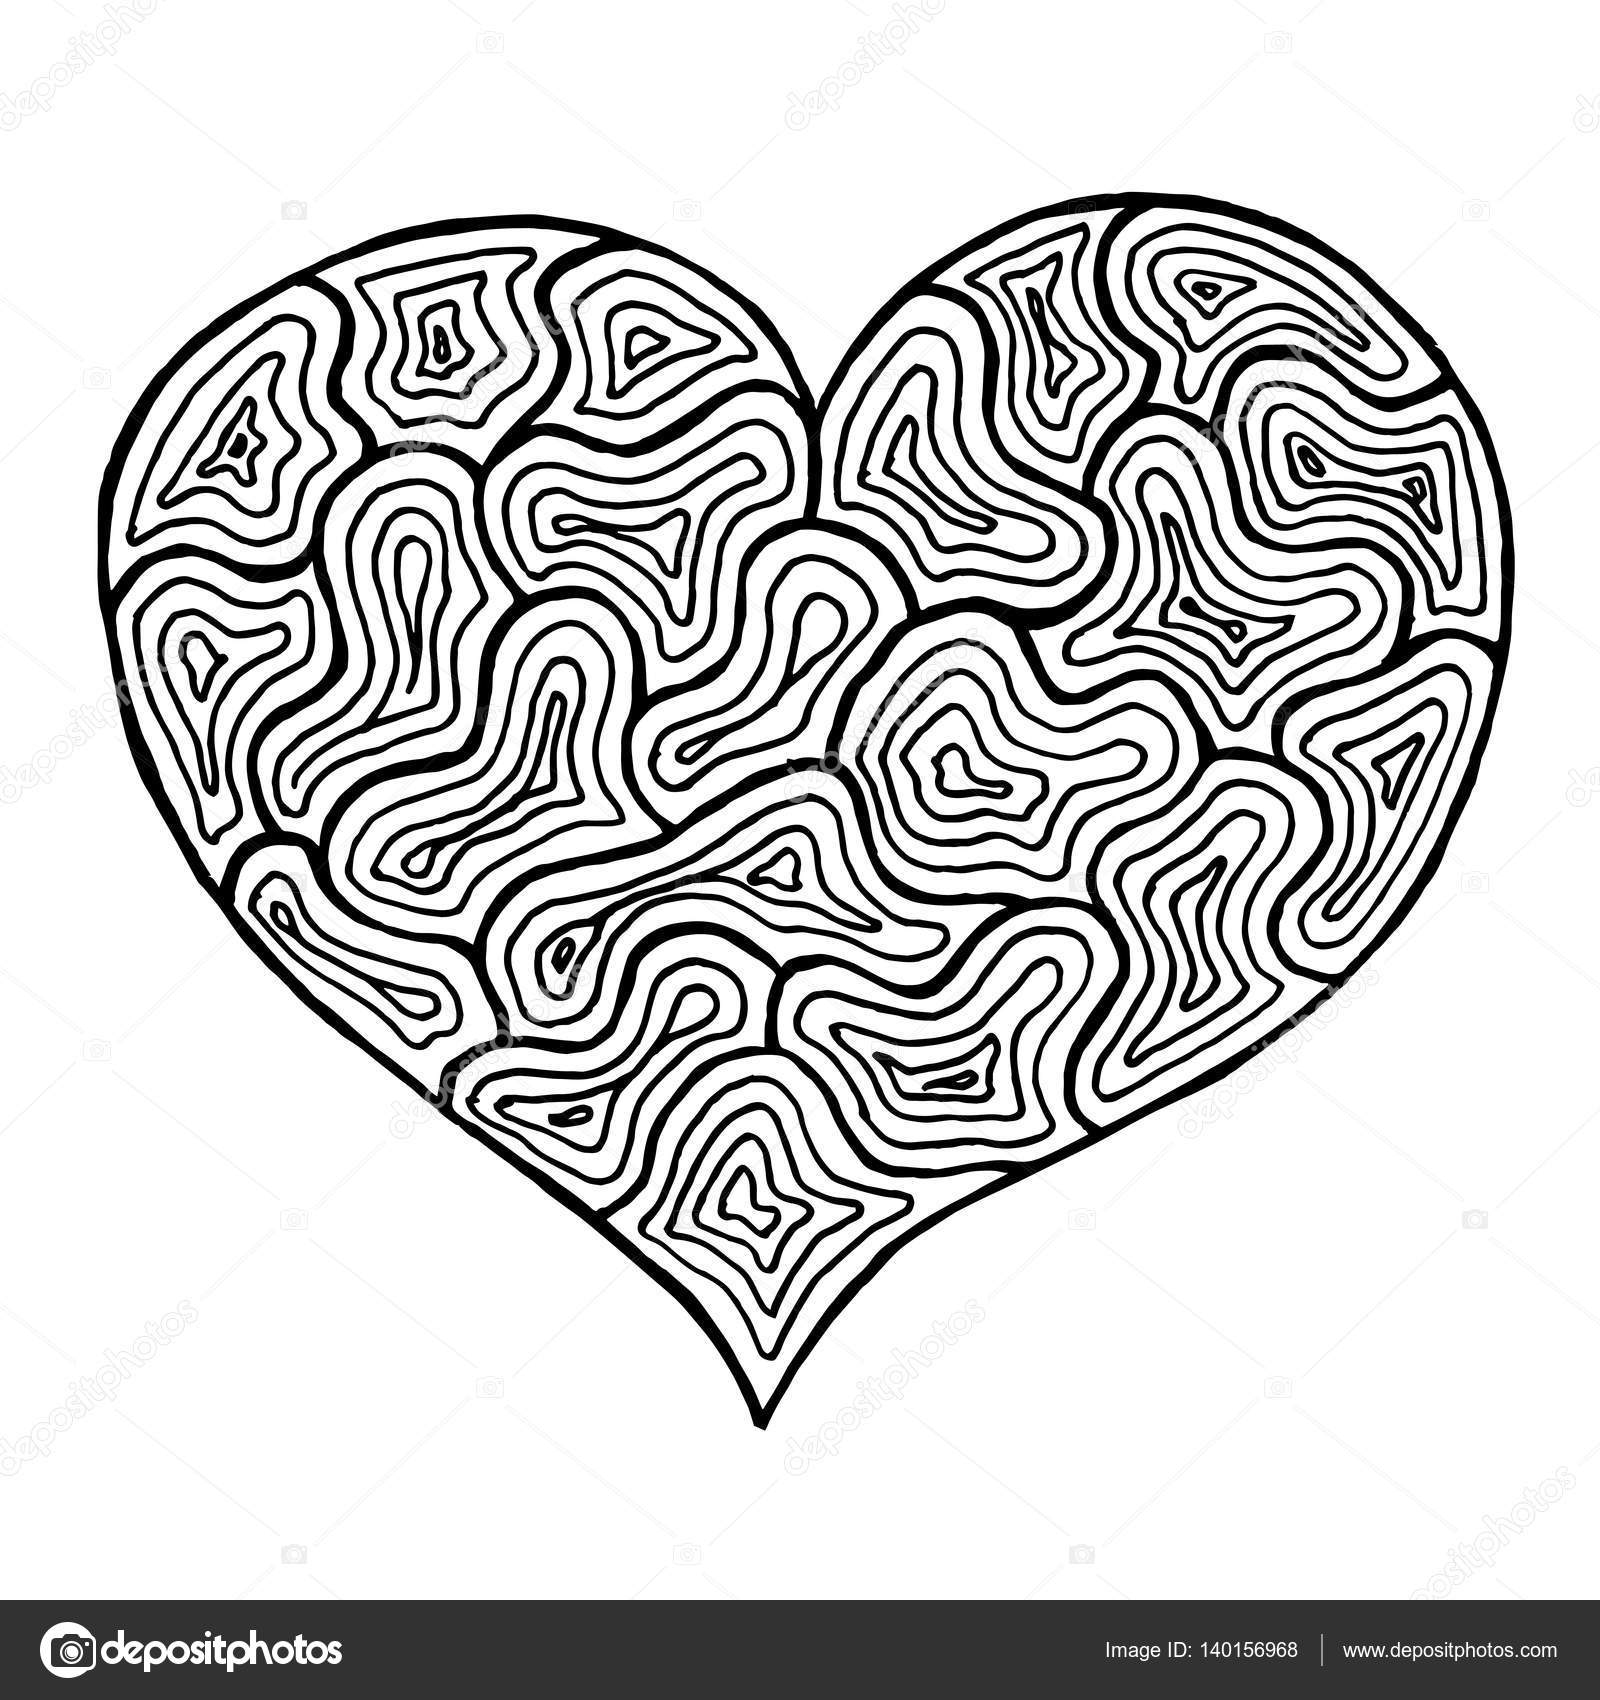 Valentines Day Heart Zentangle Black And White Symbol Vector Illustration For Web Design Trendy Printed Products Posters Invitations Greeting